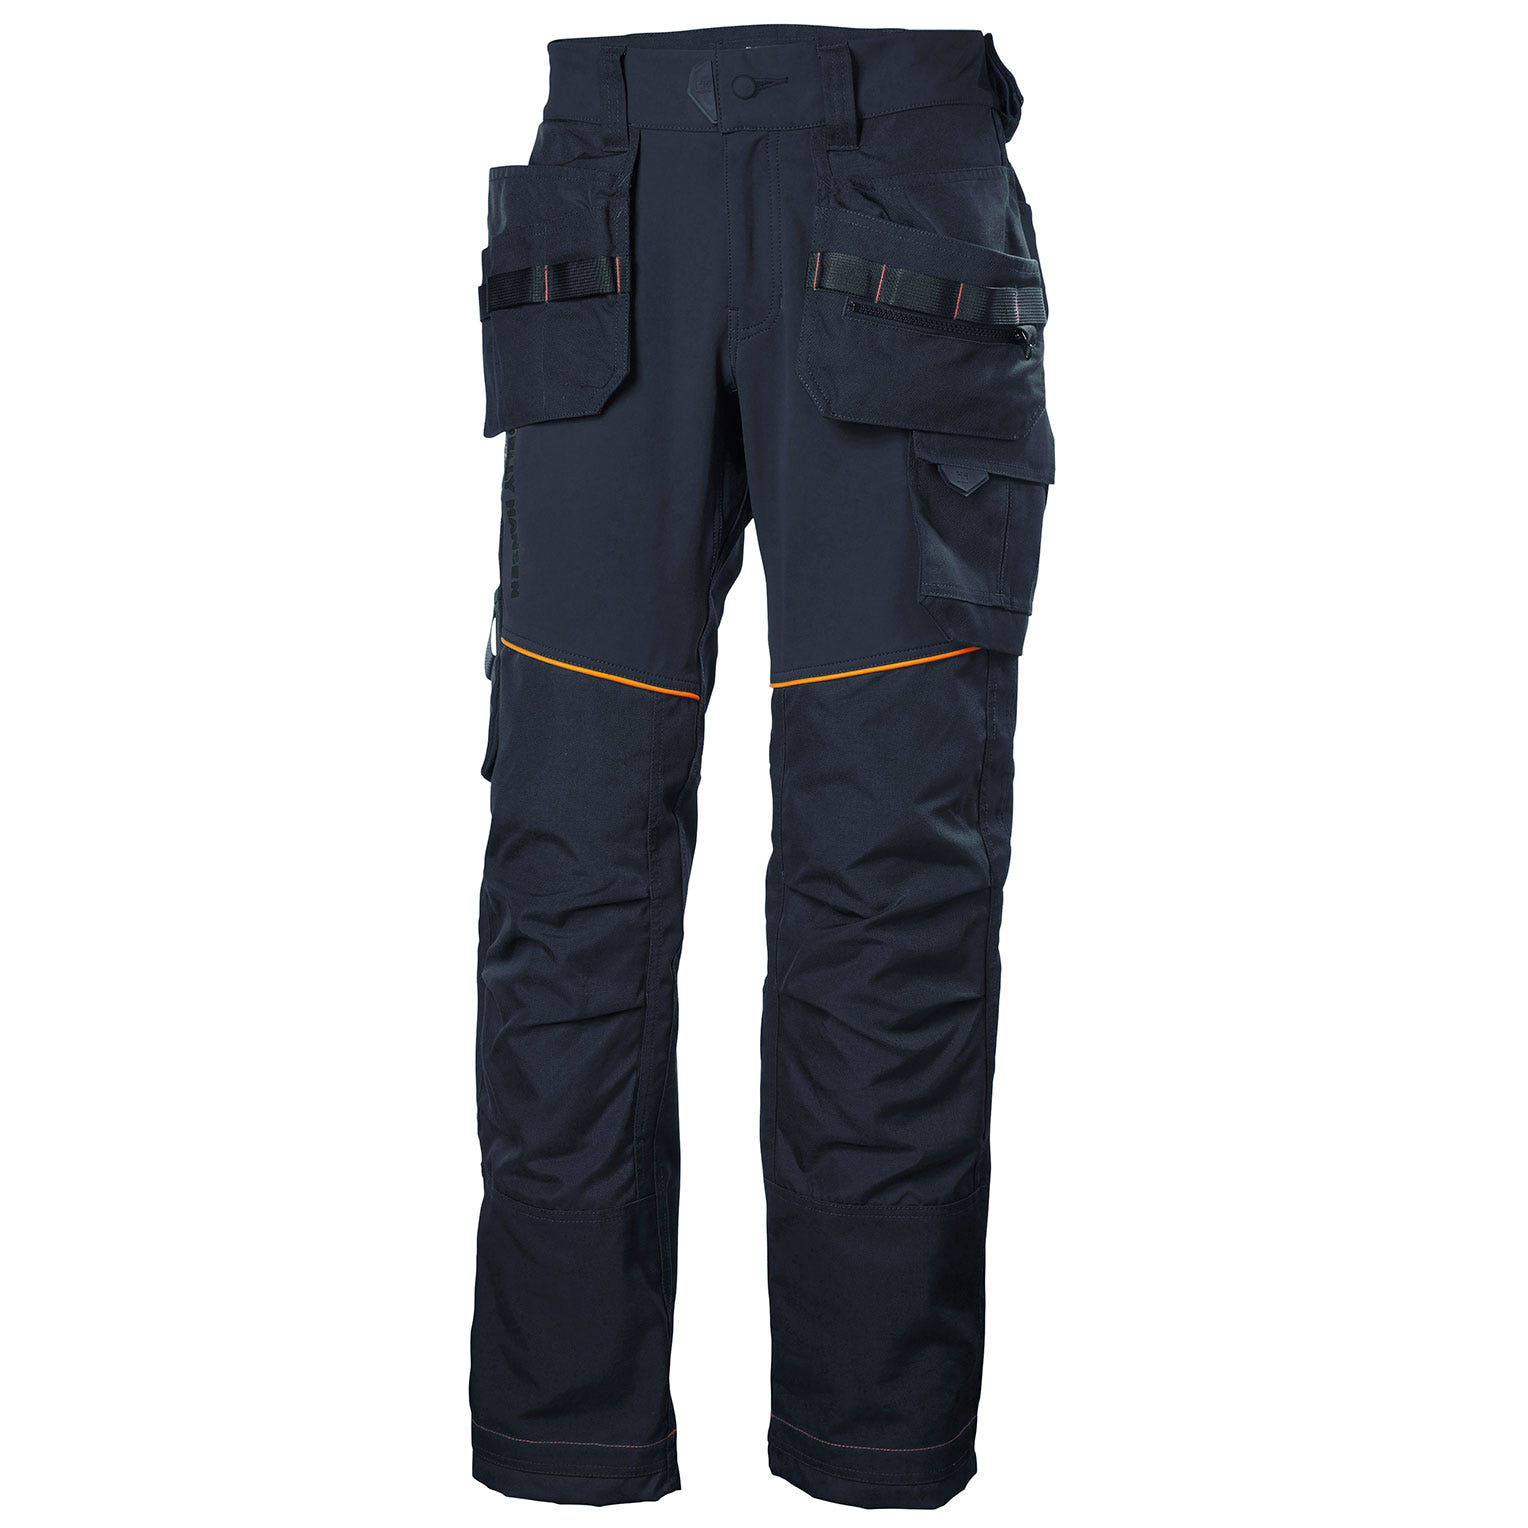 Helly Hansen Broeken Chelsea 77441 Stretch navy(590)